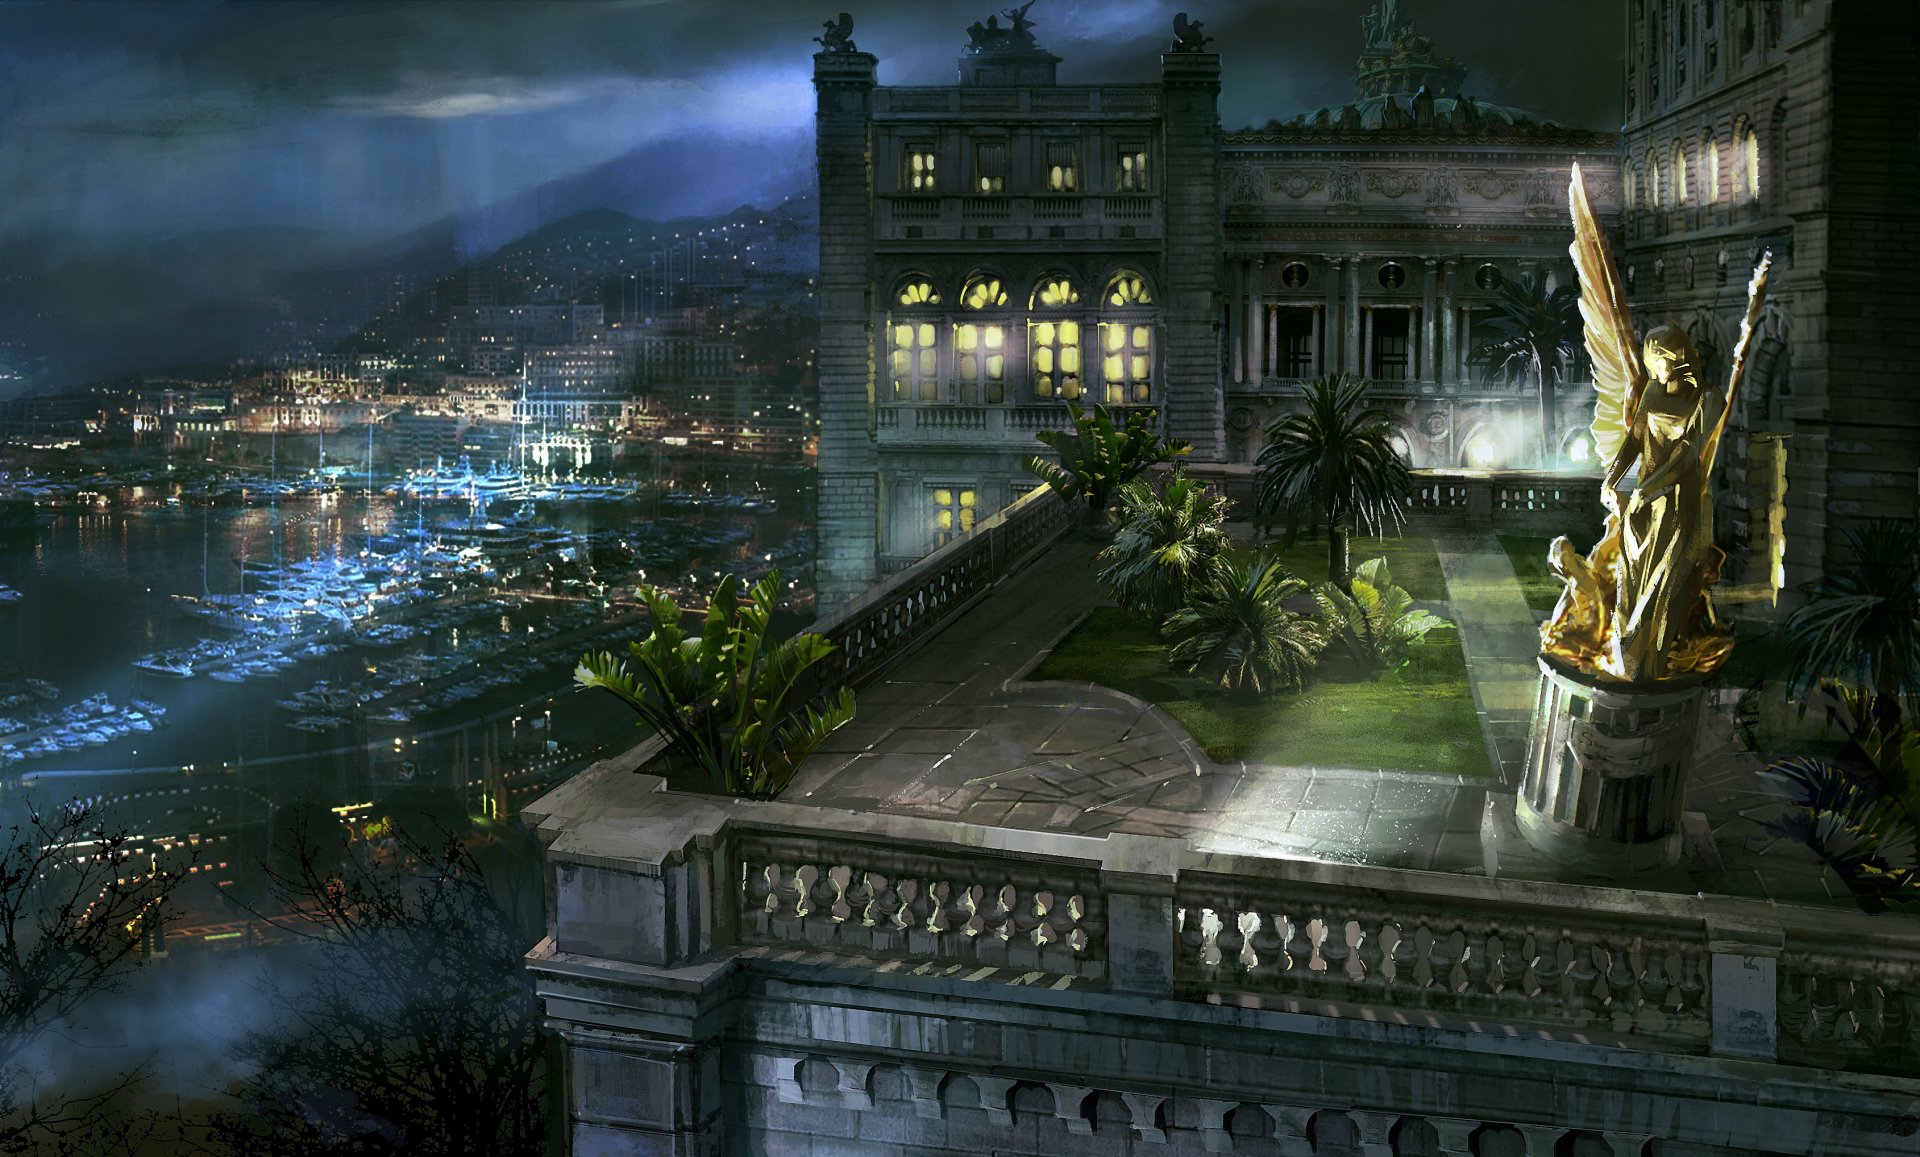 Artistic - Building  Harbor Monaco Night Statue Wallpaper